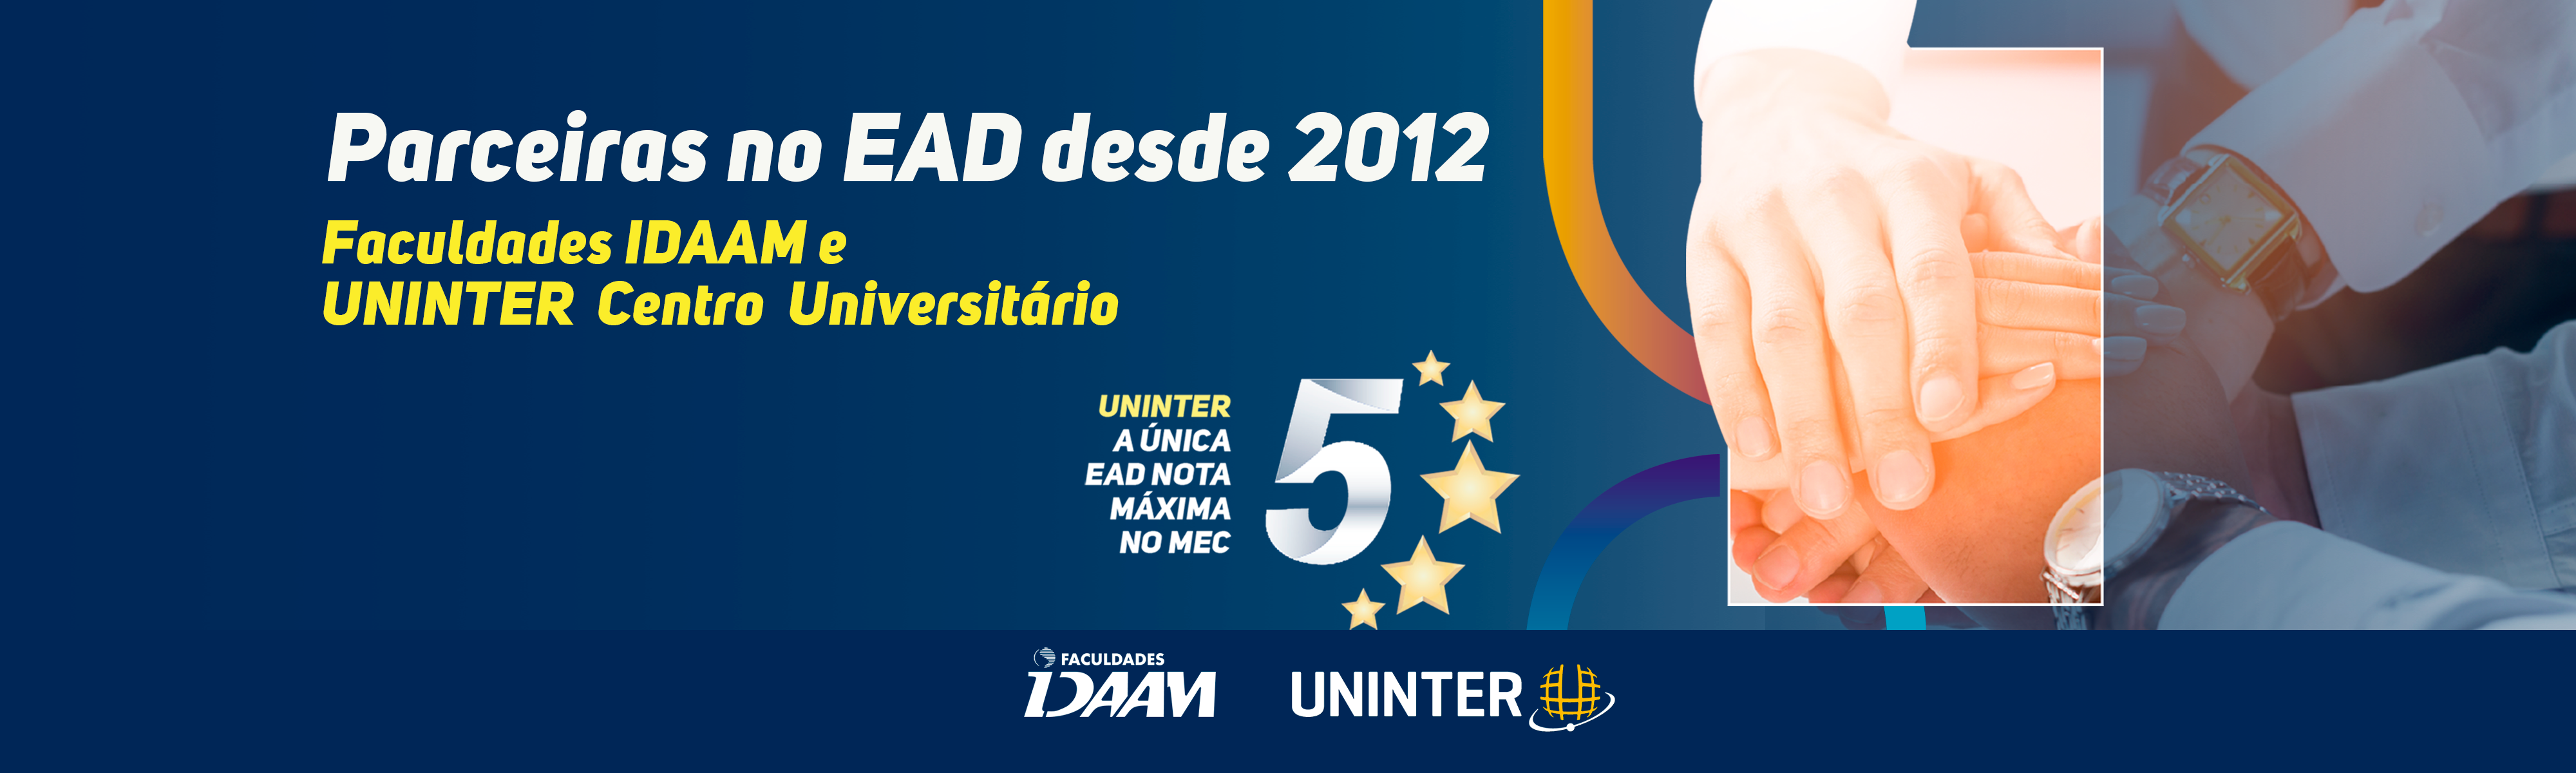 slide-idaam_uninter2